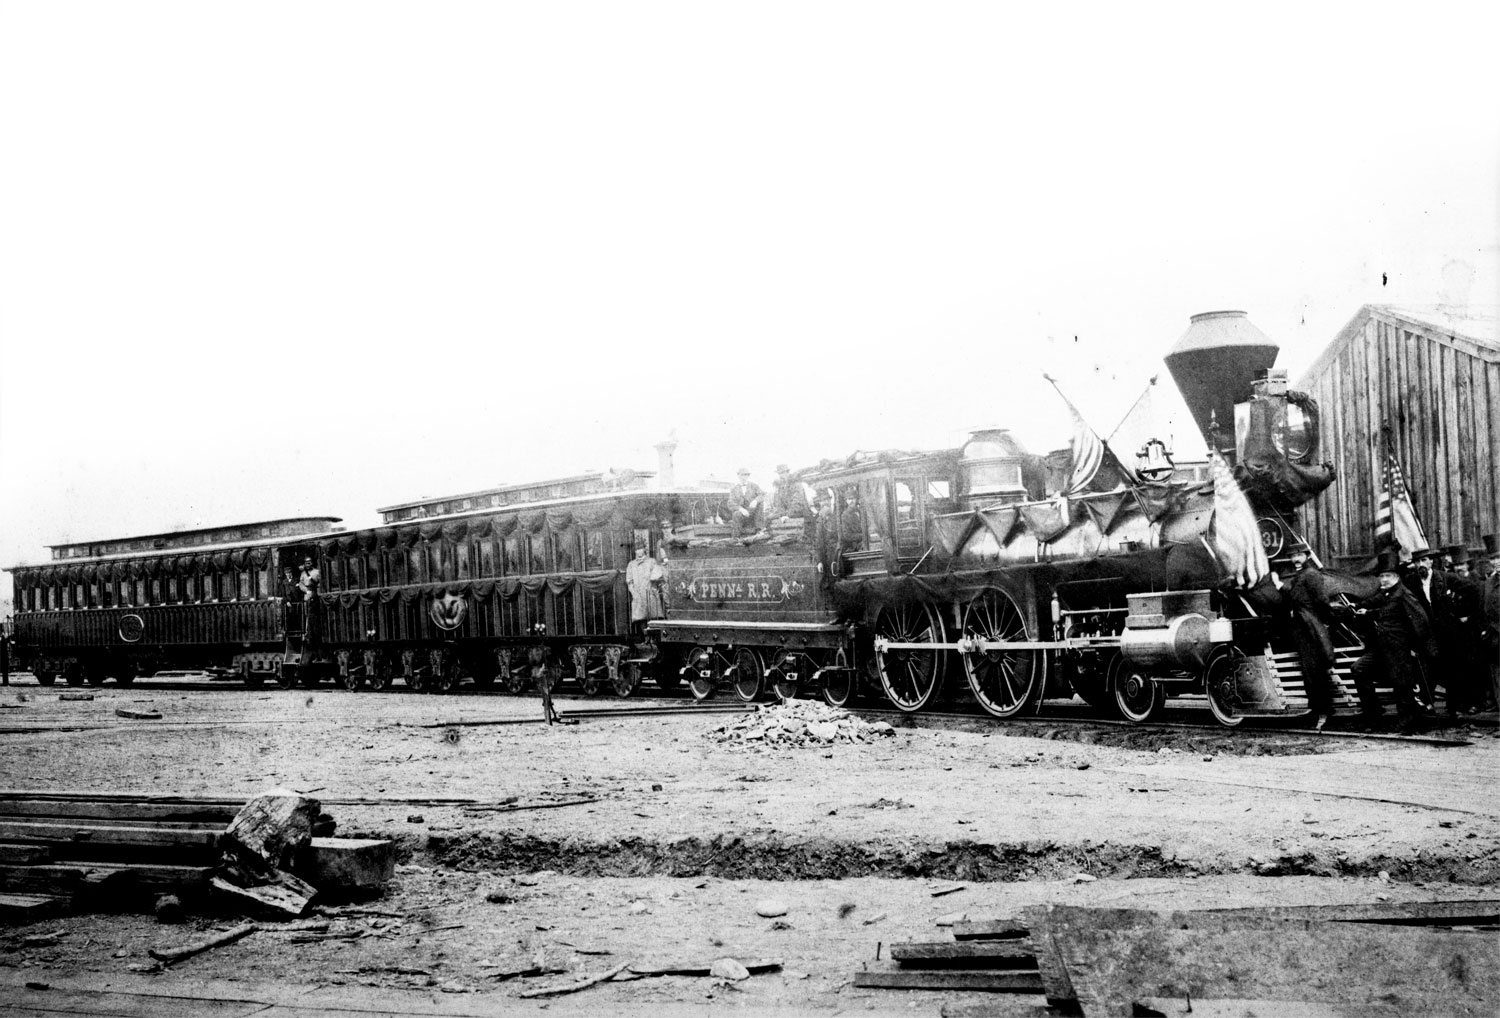 Lincon's funeral train passed through Calumet City on may 1, 1865.